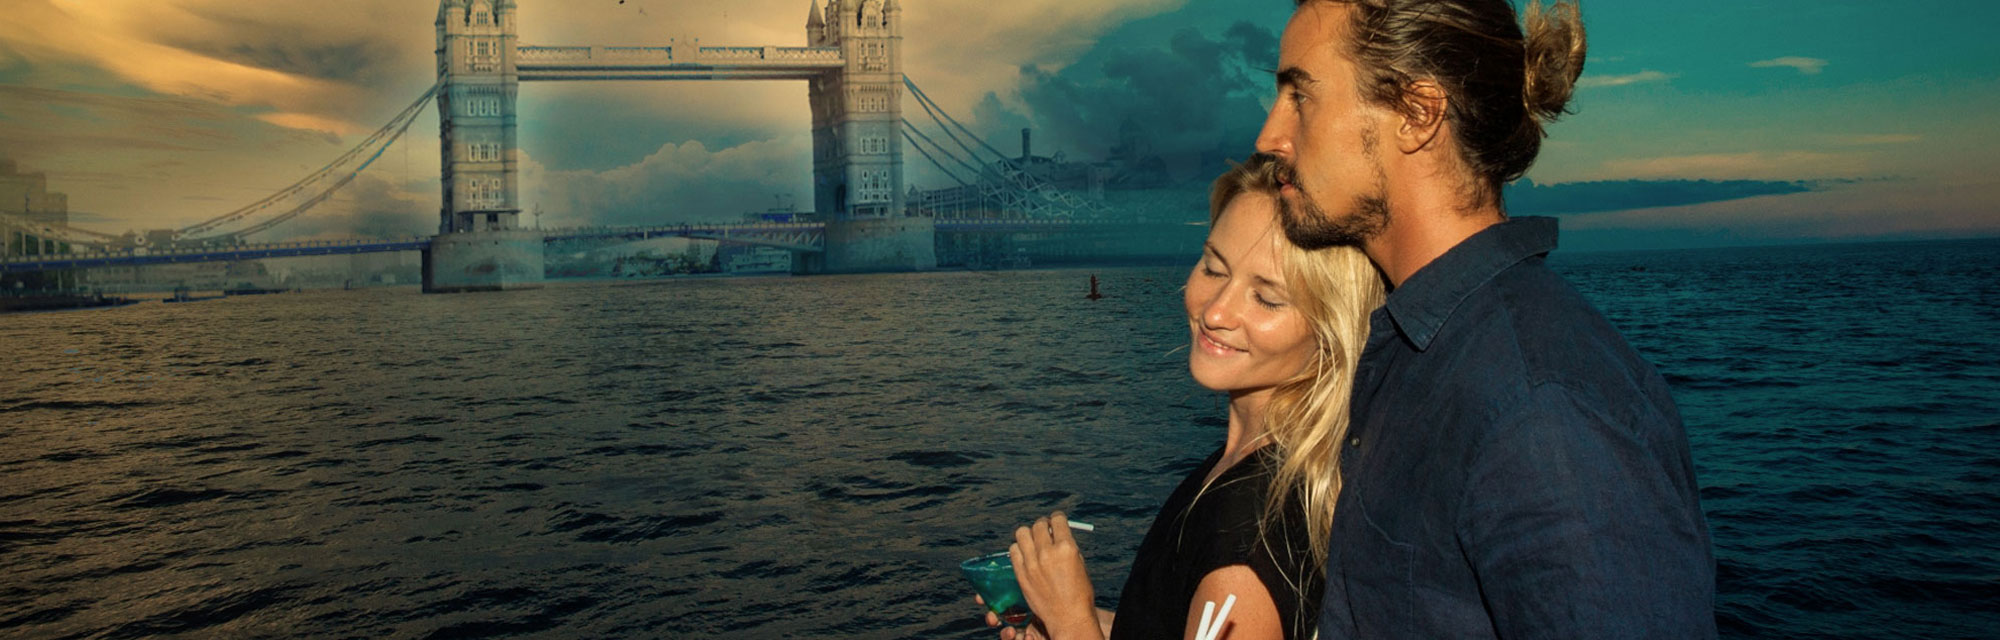 Romantic dinner cruise london